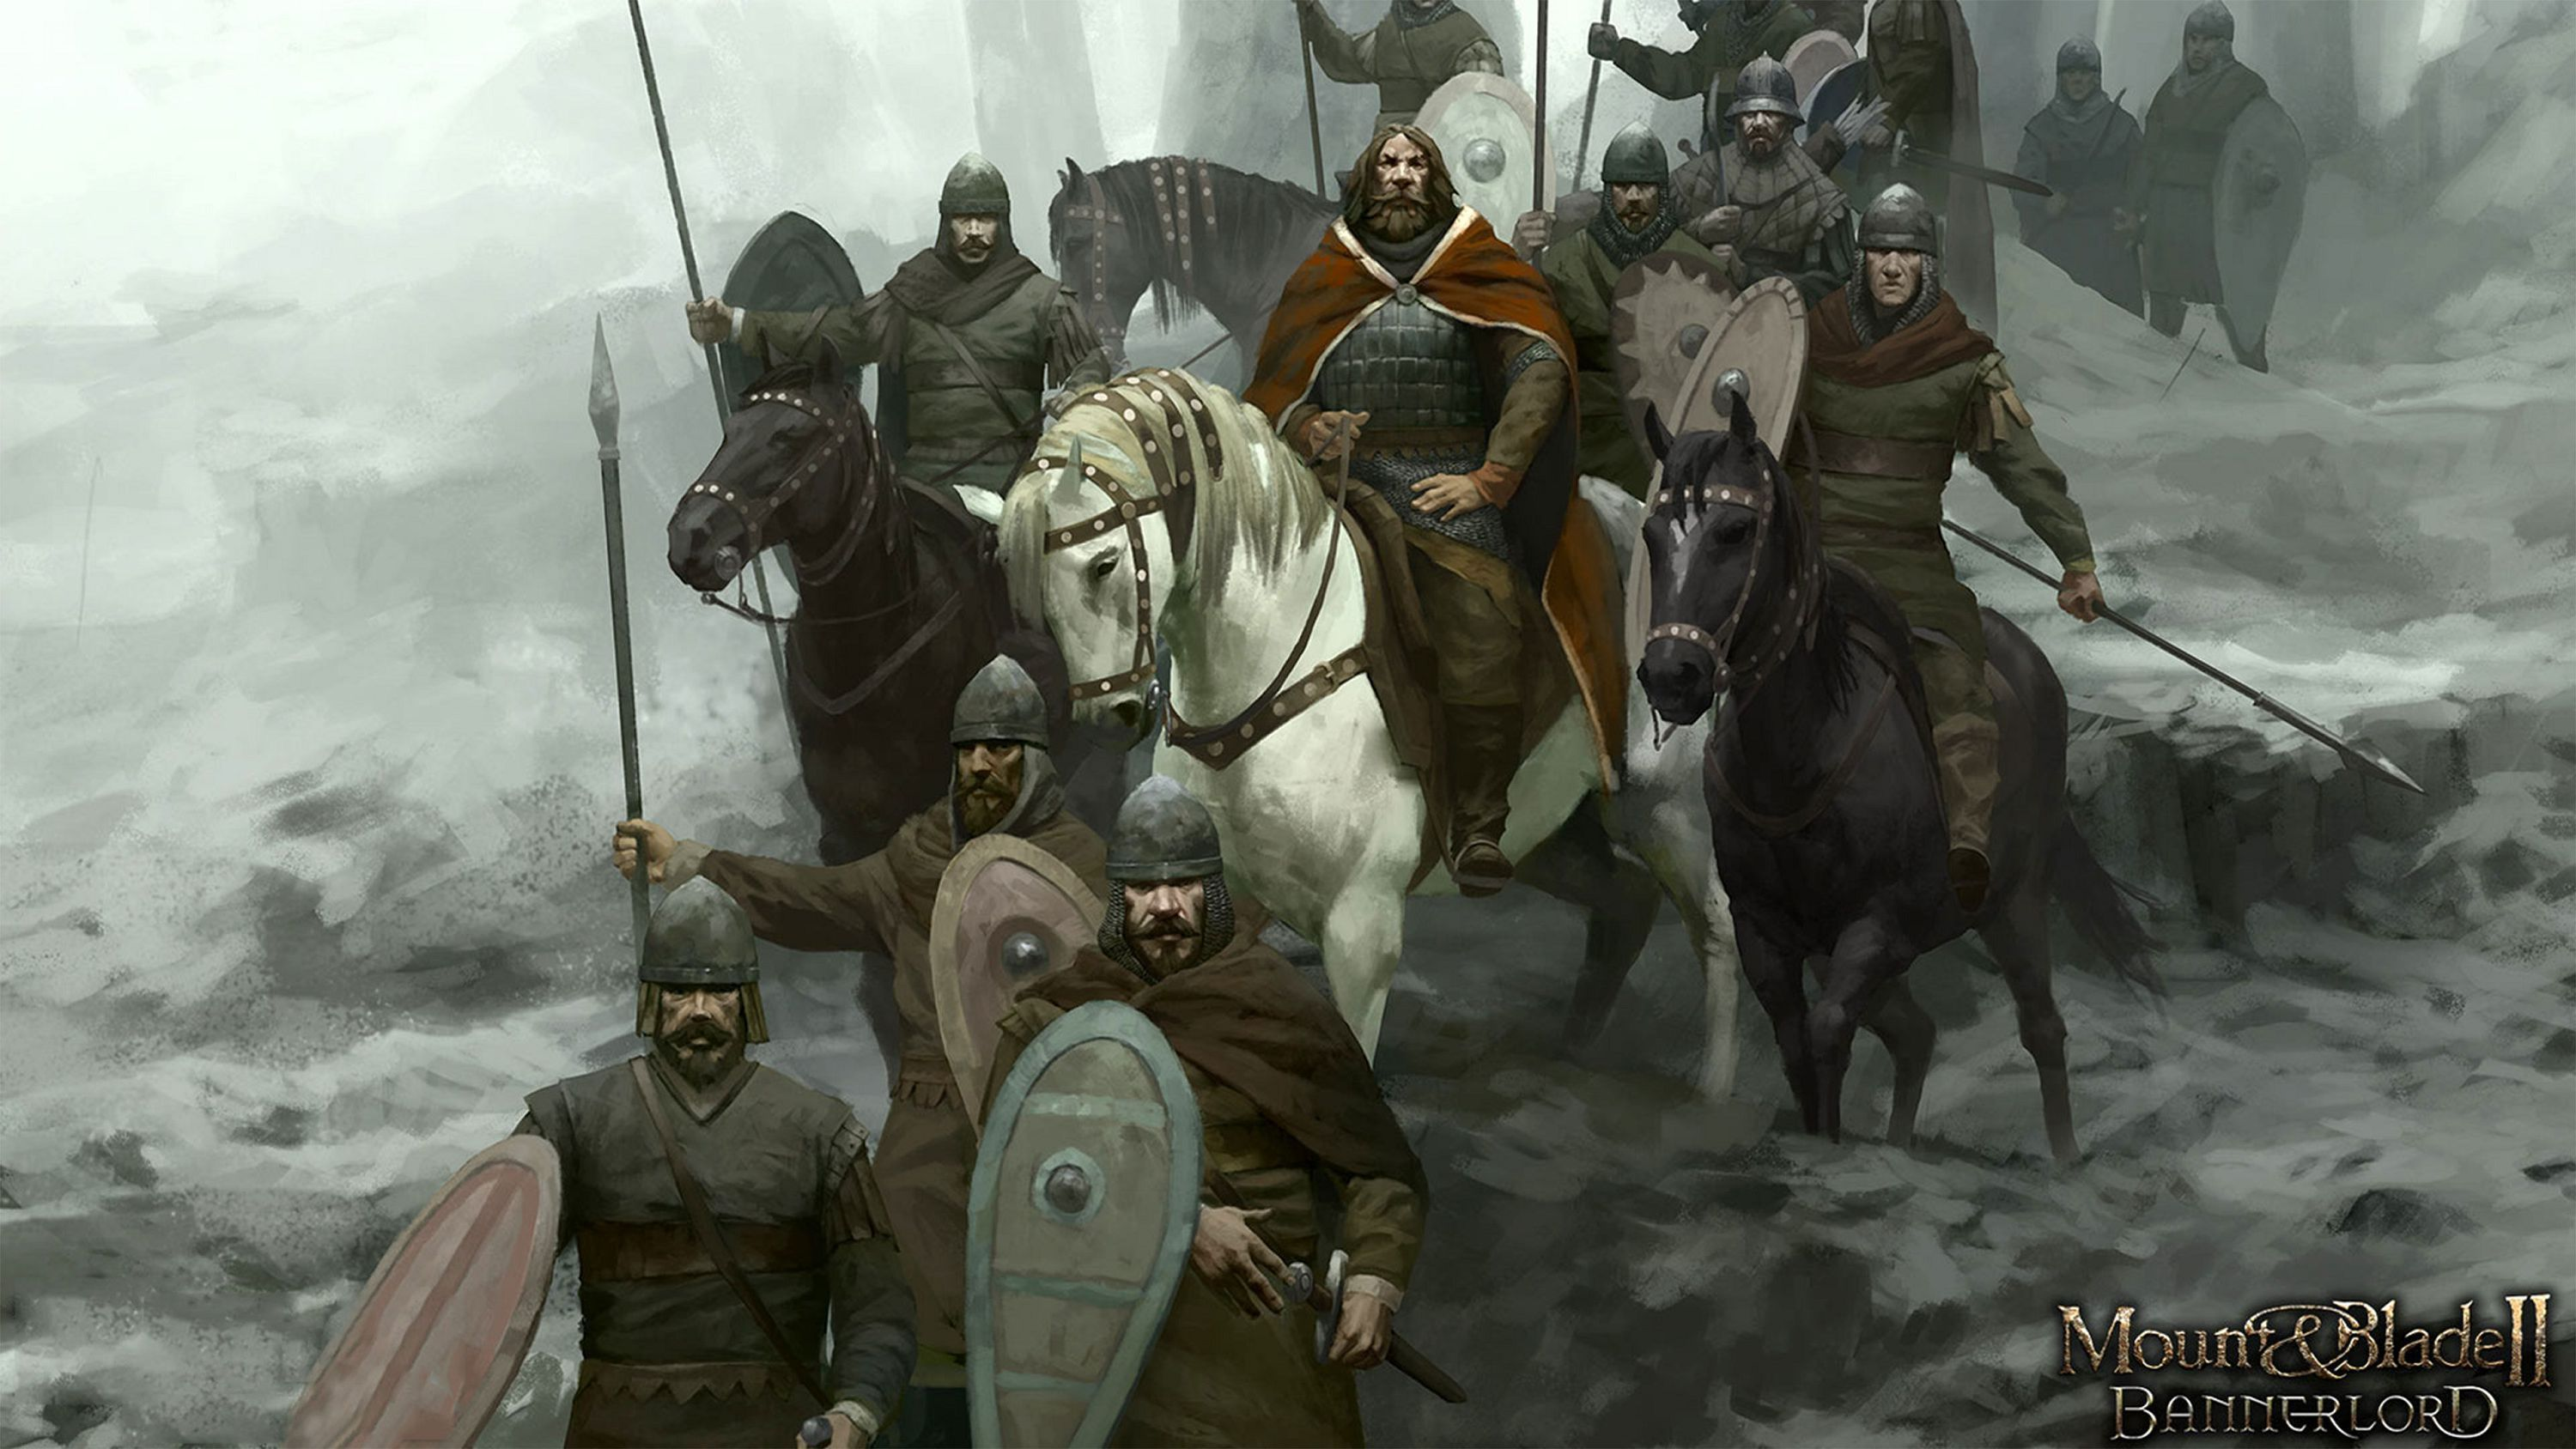 Mount Blade 2 Bannerlord High Quality Wallpapers